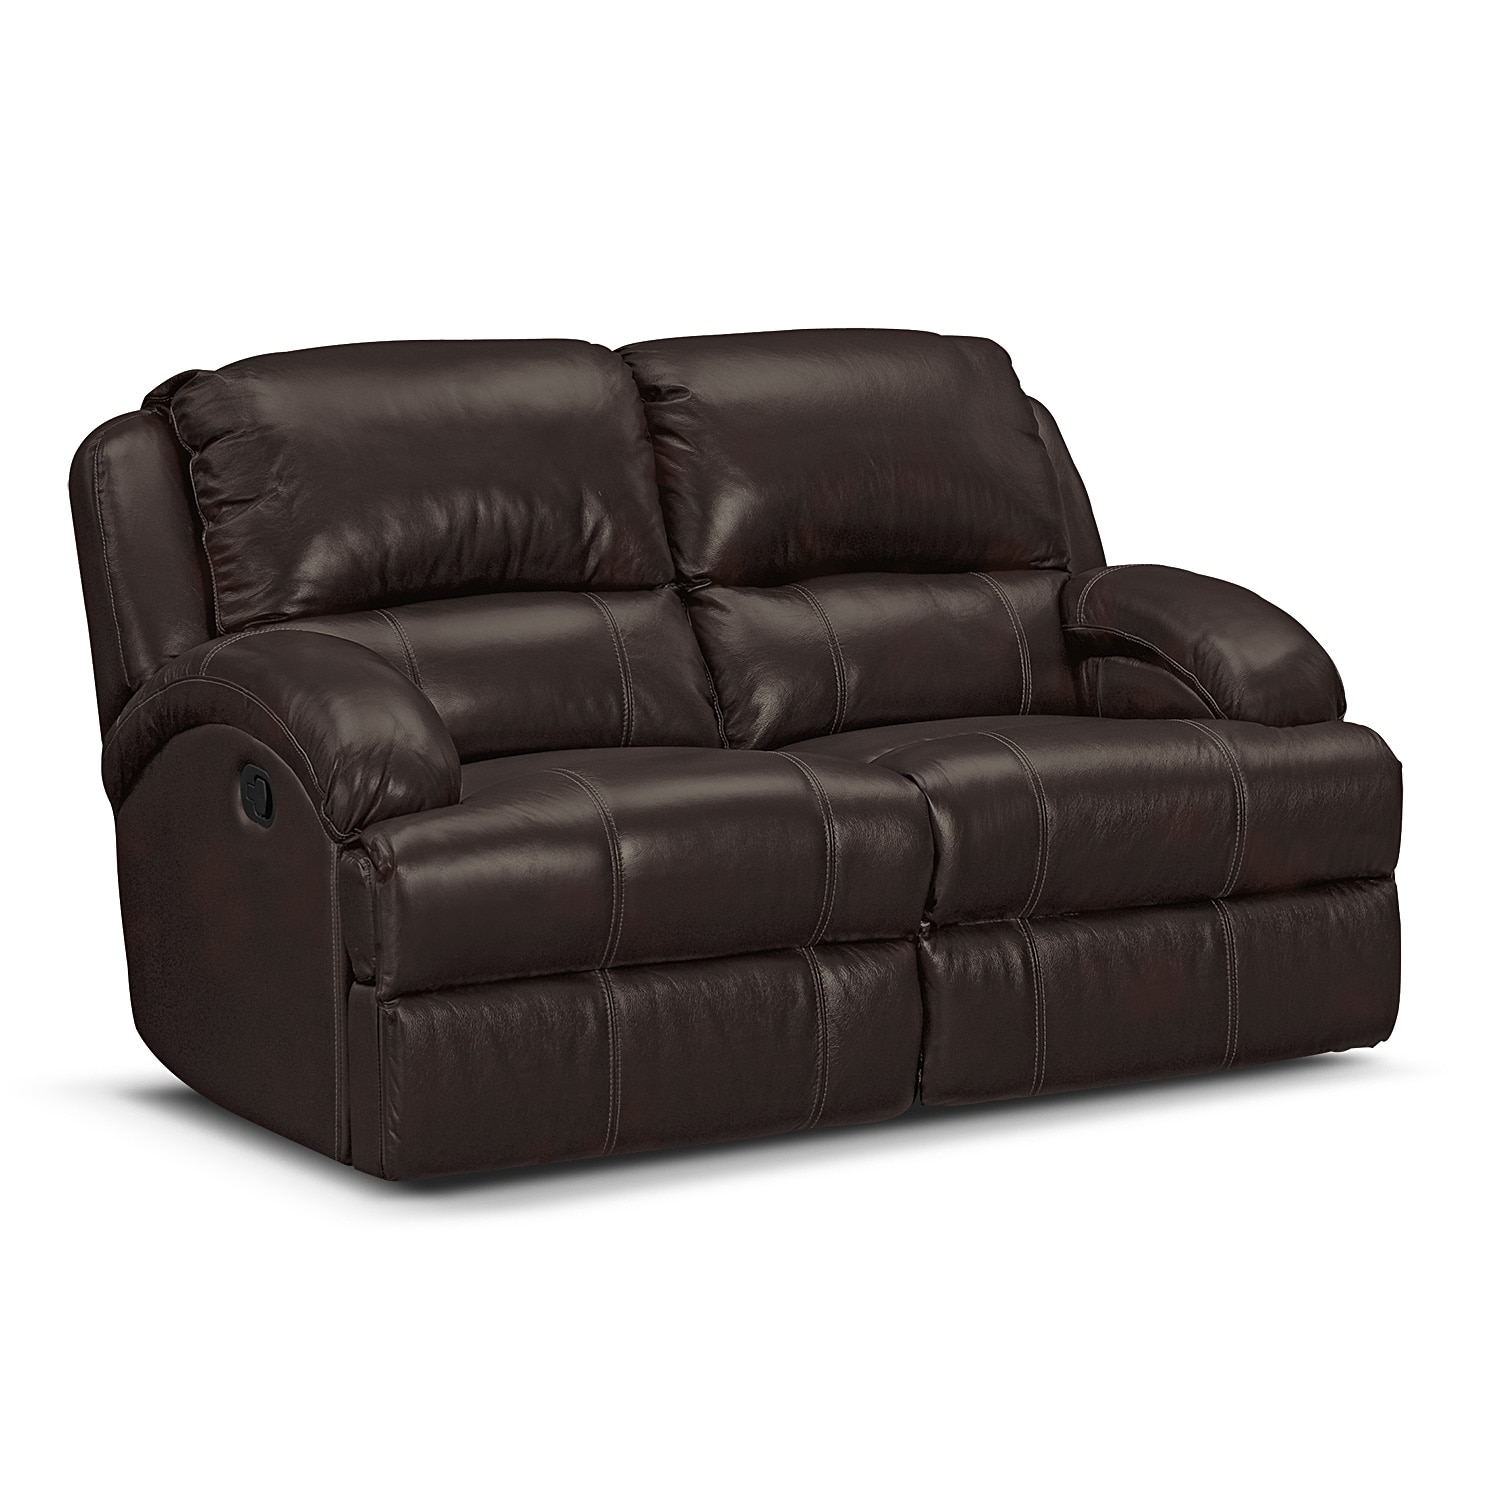 Document moved Leather loveseat recliners